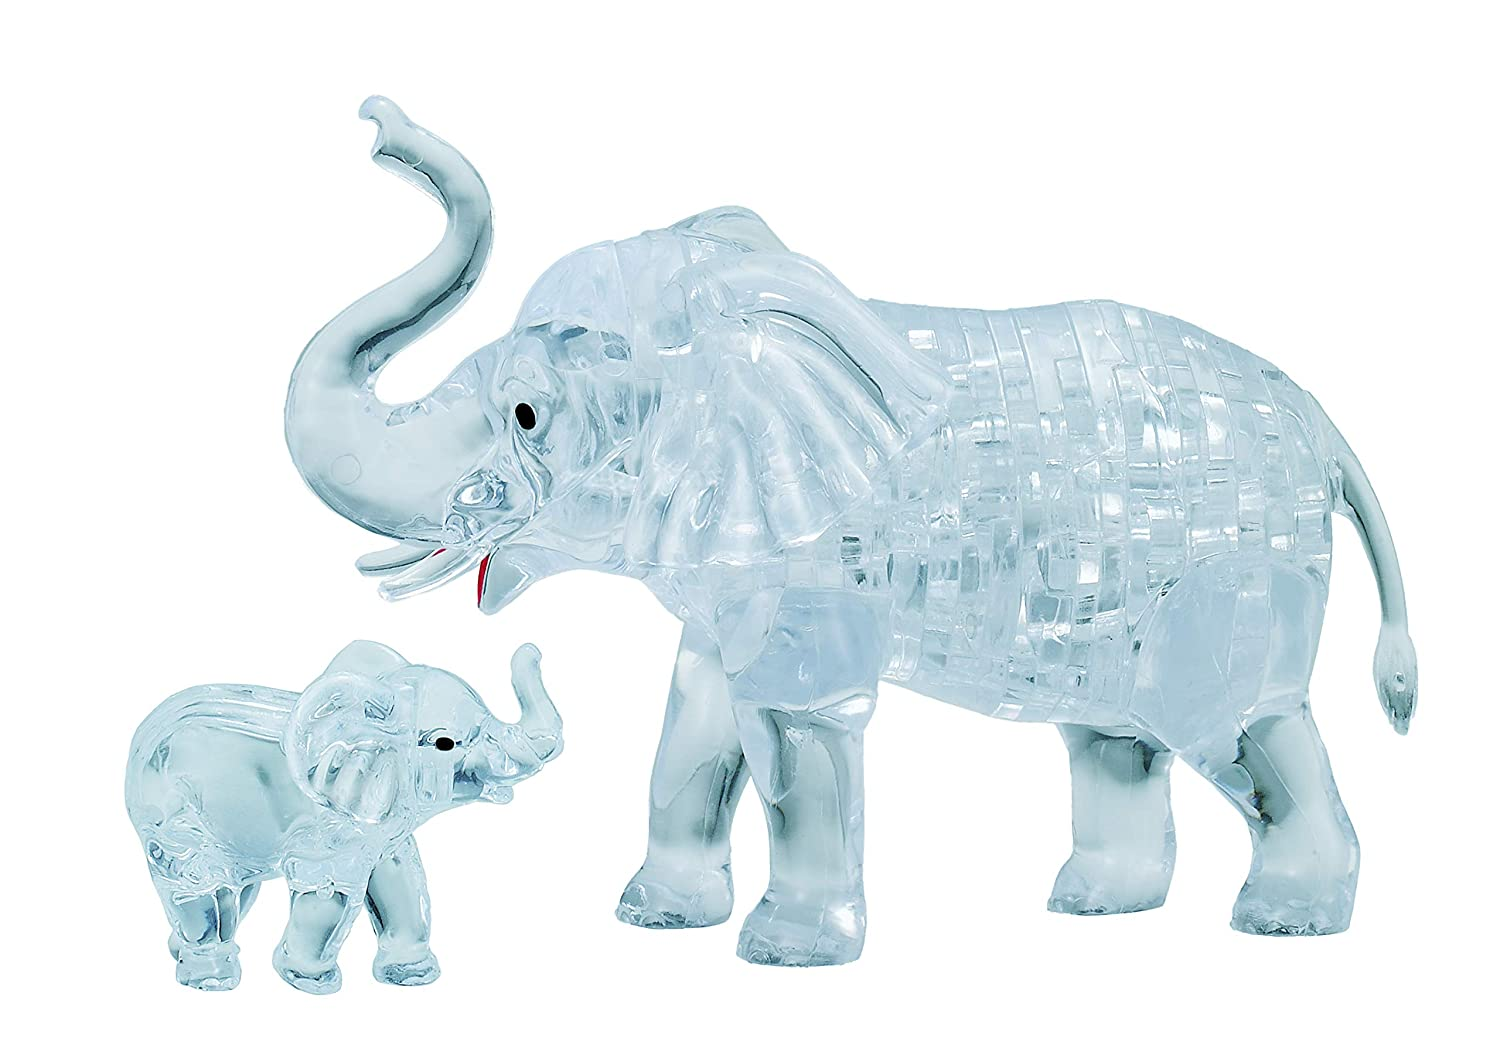 Original 3D Crystal Puzzle - Elephant and Baby: 46 Pieces University Games 31082